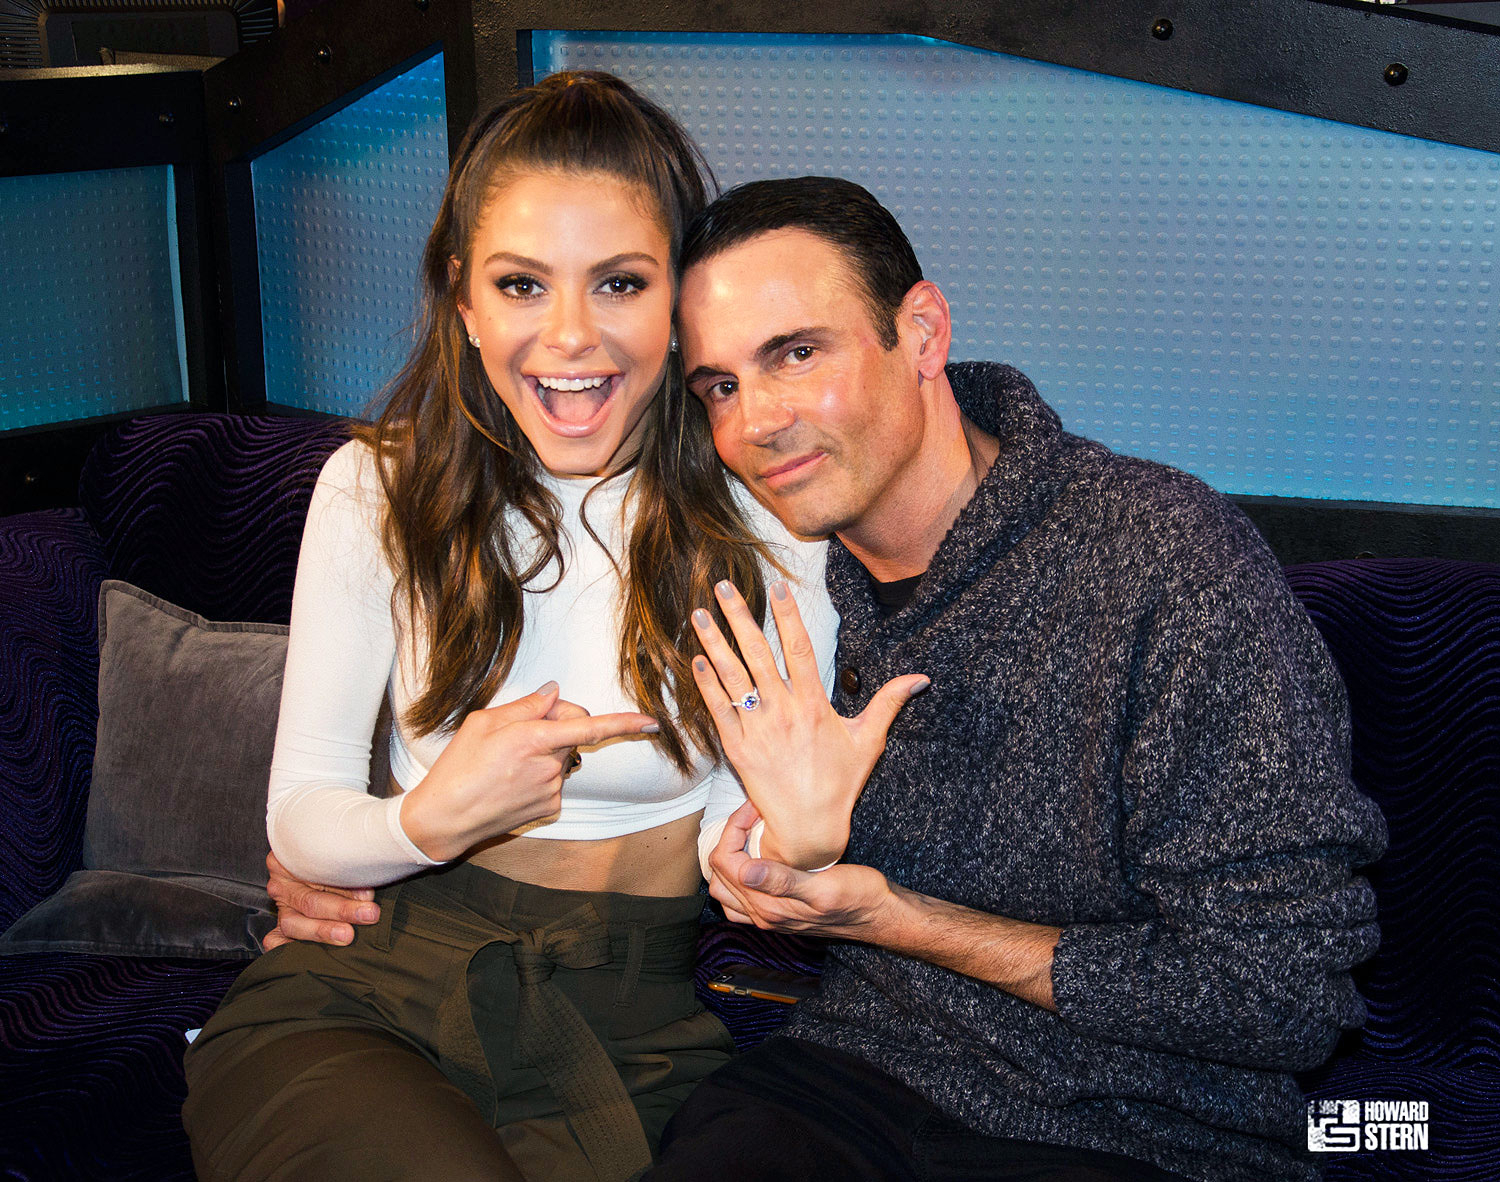 Maria Menounos Just Got Married on Live TV